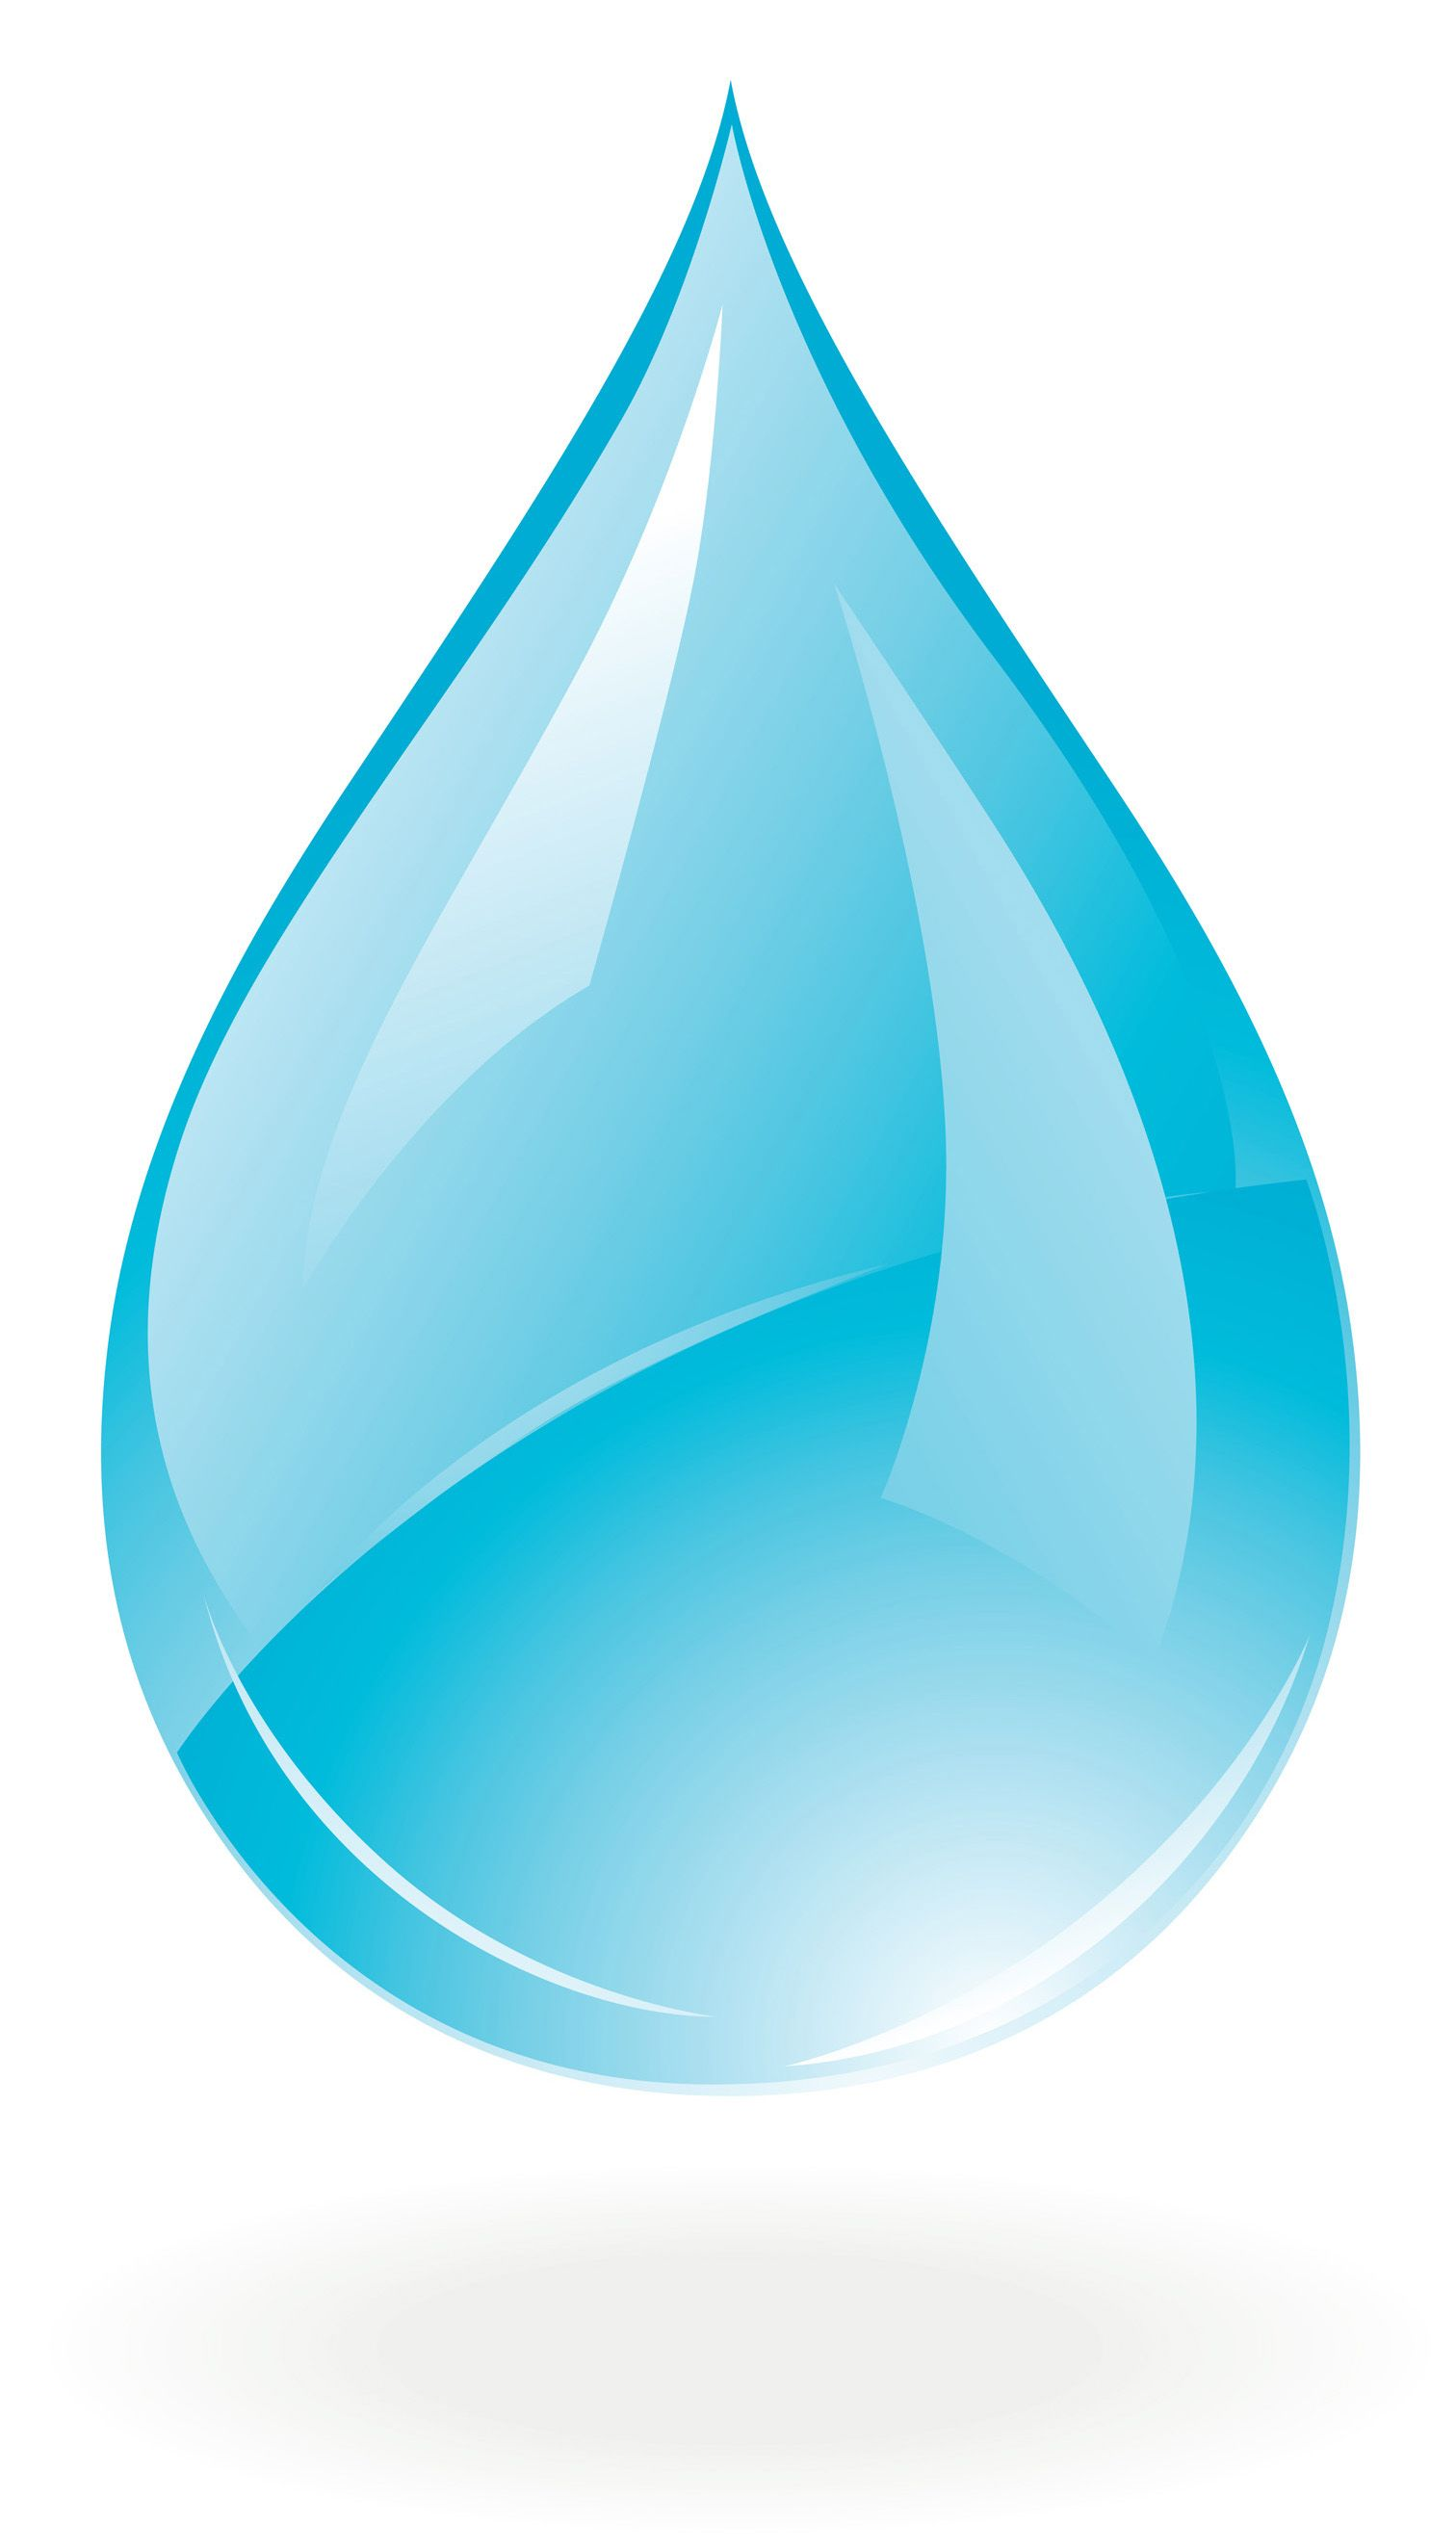 Water Drop Psd Clipart.